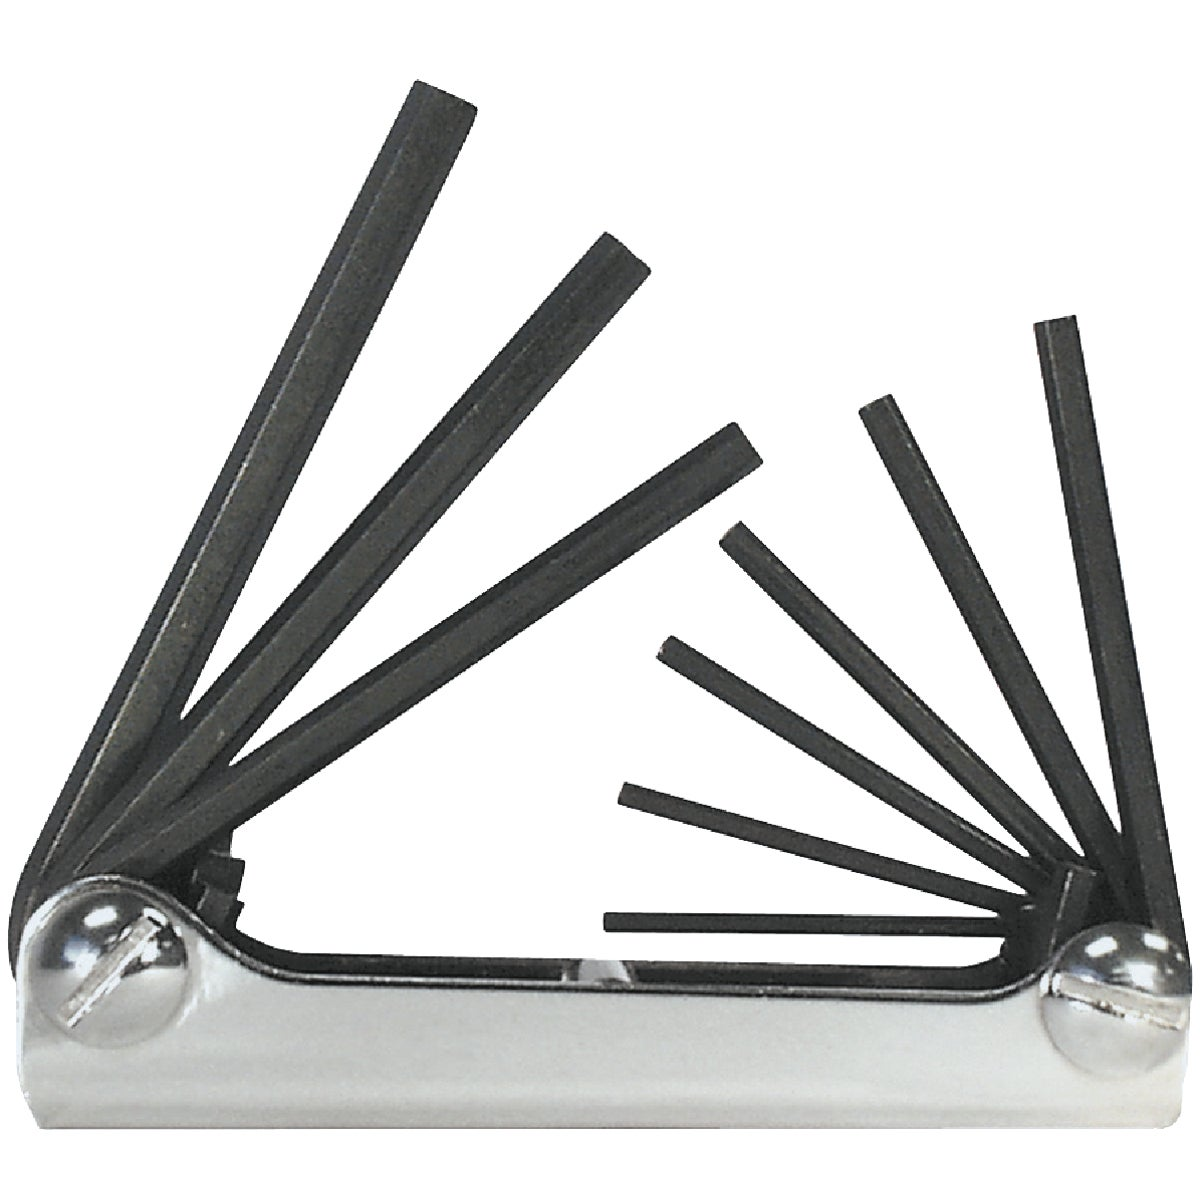 9PC HEX KEY SET - 20911 by Eklind